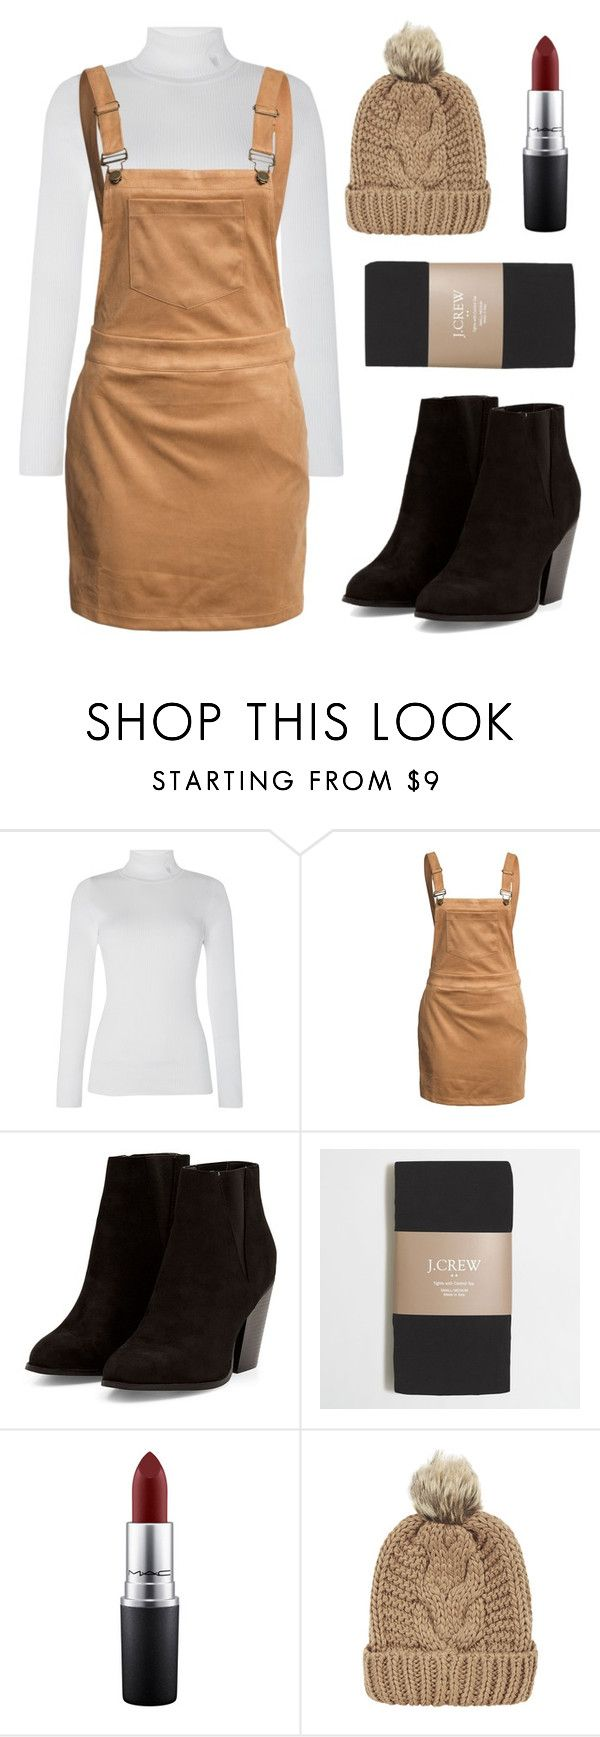 """""""Chic"""" by lovedreamfashion ❤ liked on Polyvore featuring Lauren Ralph Lauren, Glamorous, J.Crew, MAC Cosmetics, Chicnova Fashion, skirt, Boots, beanie and overall"""